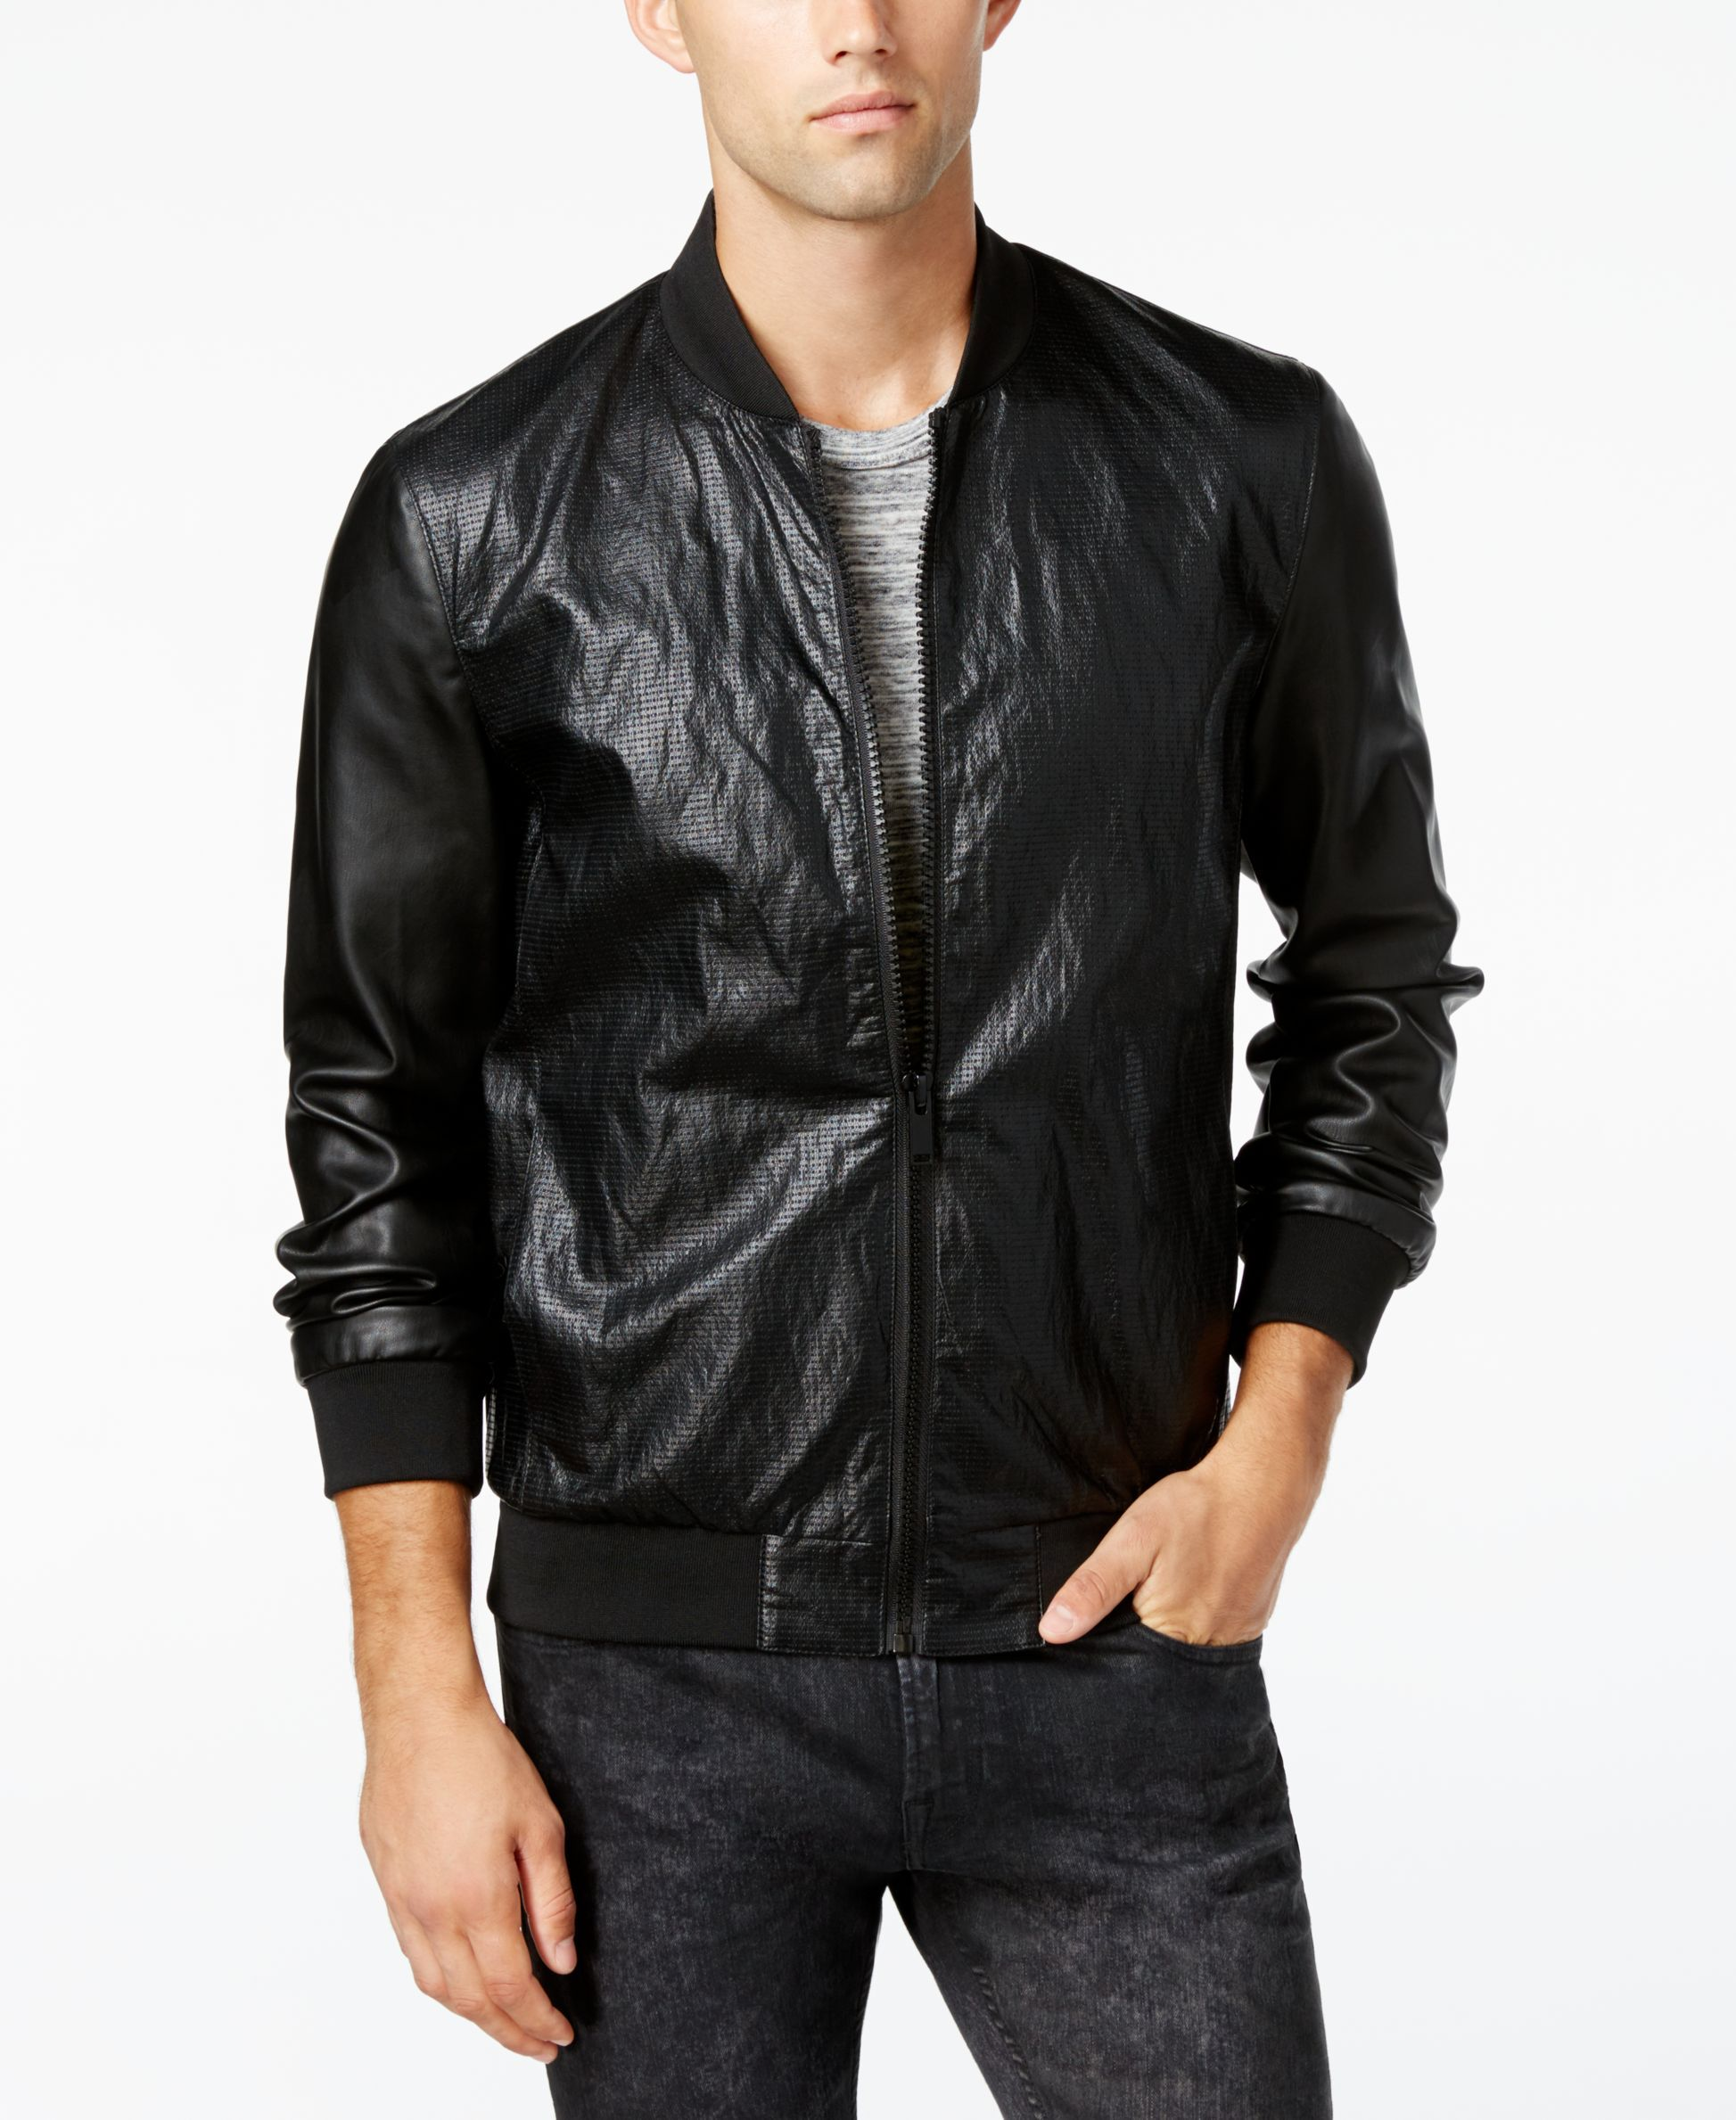 50ceb6397 Guess Men's Perforated Faux-Leather Bomber Jacket | Style n shit ...